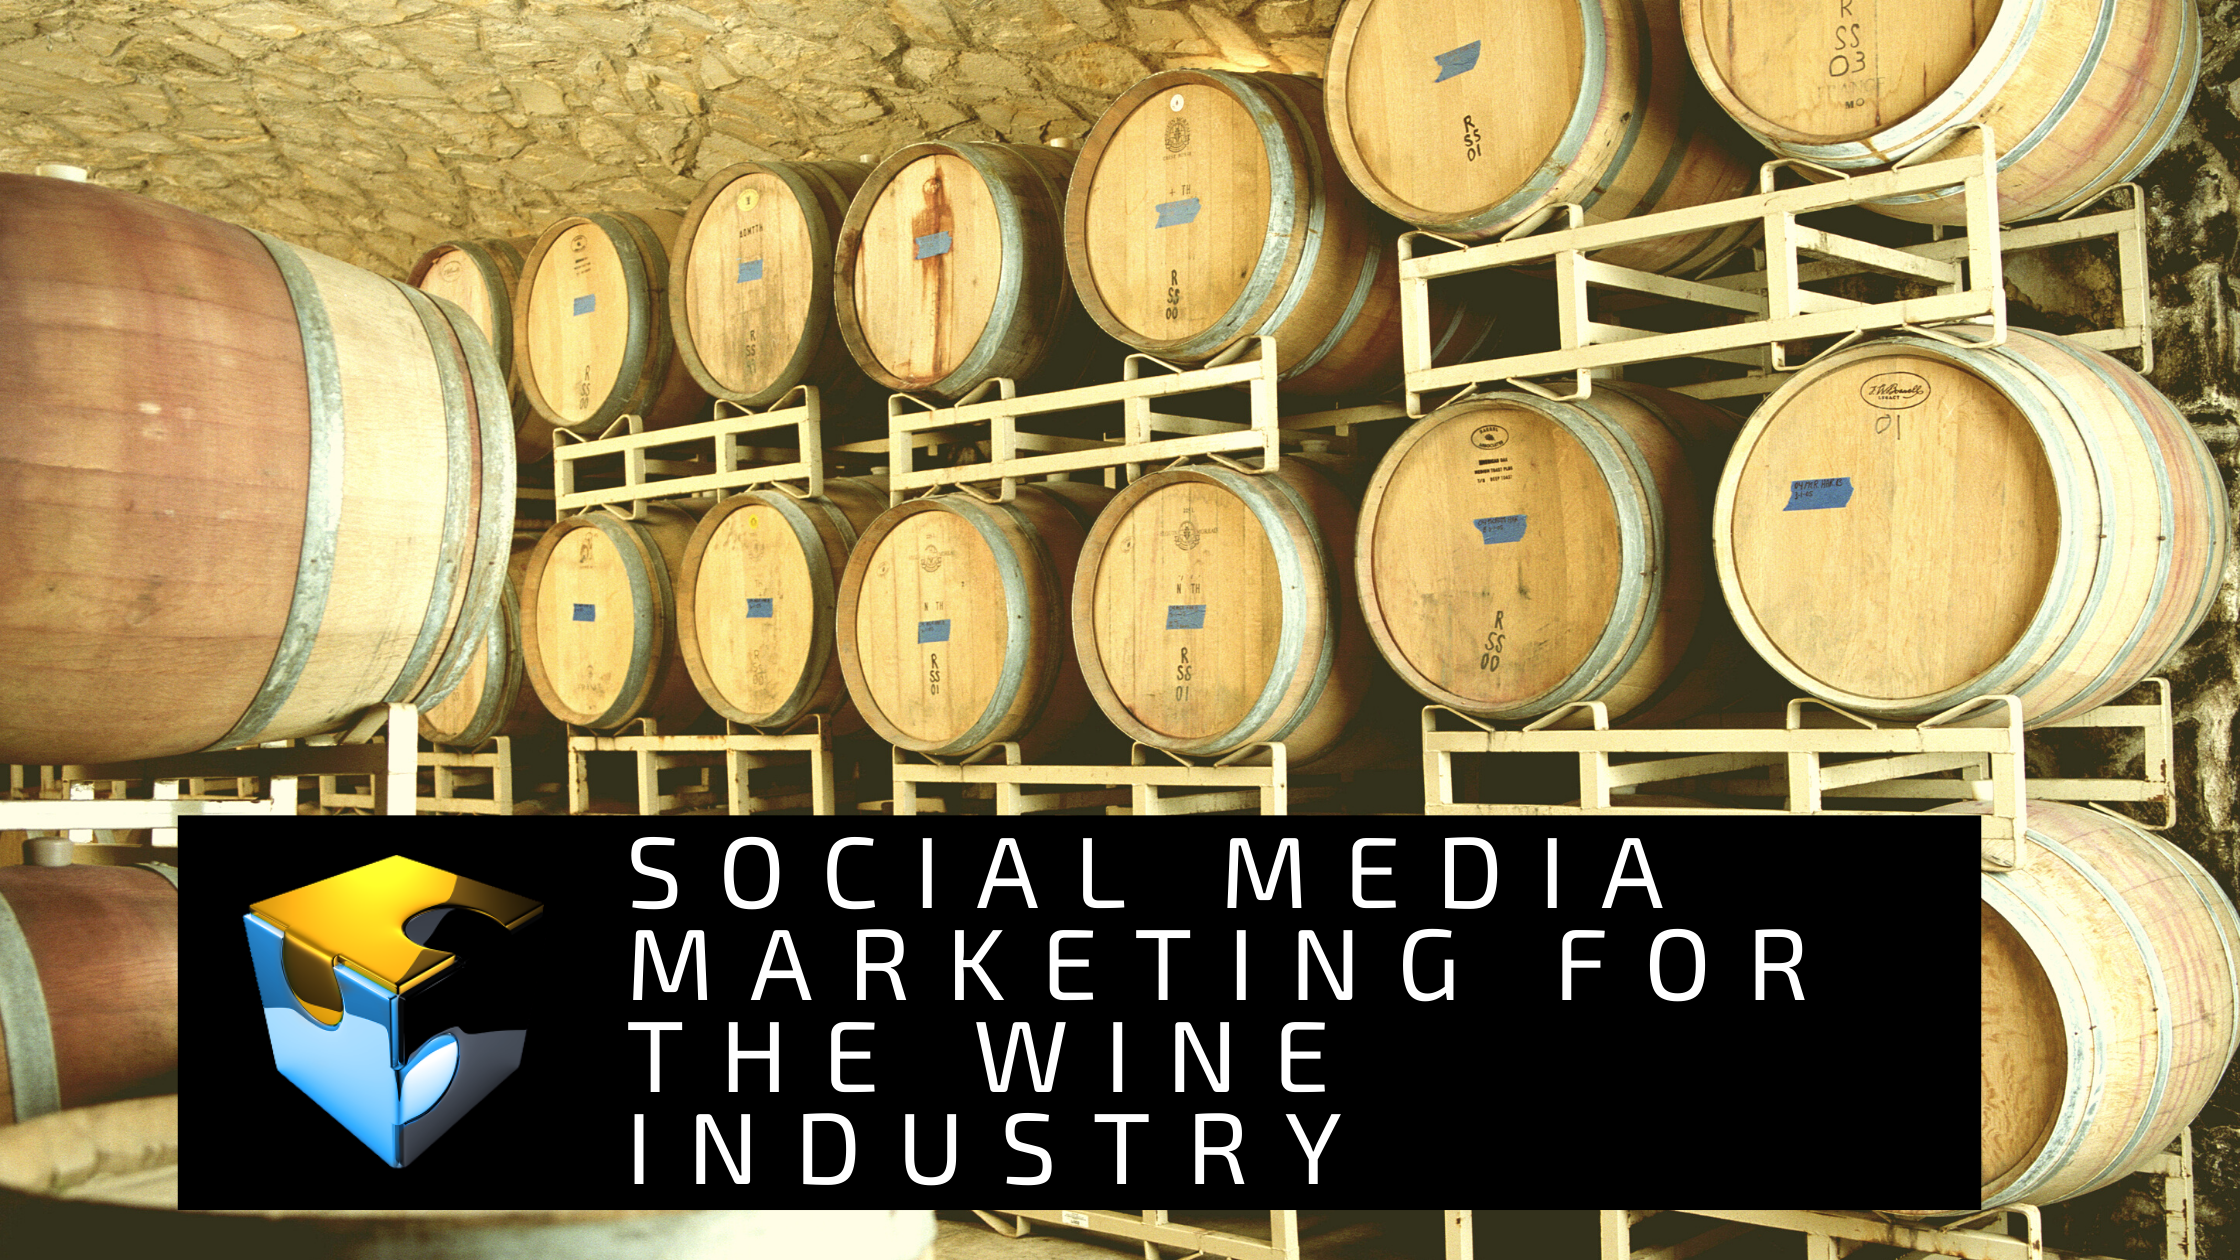 Social Media Marketing for The Wine Industry